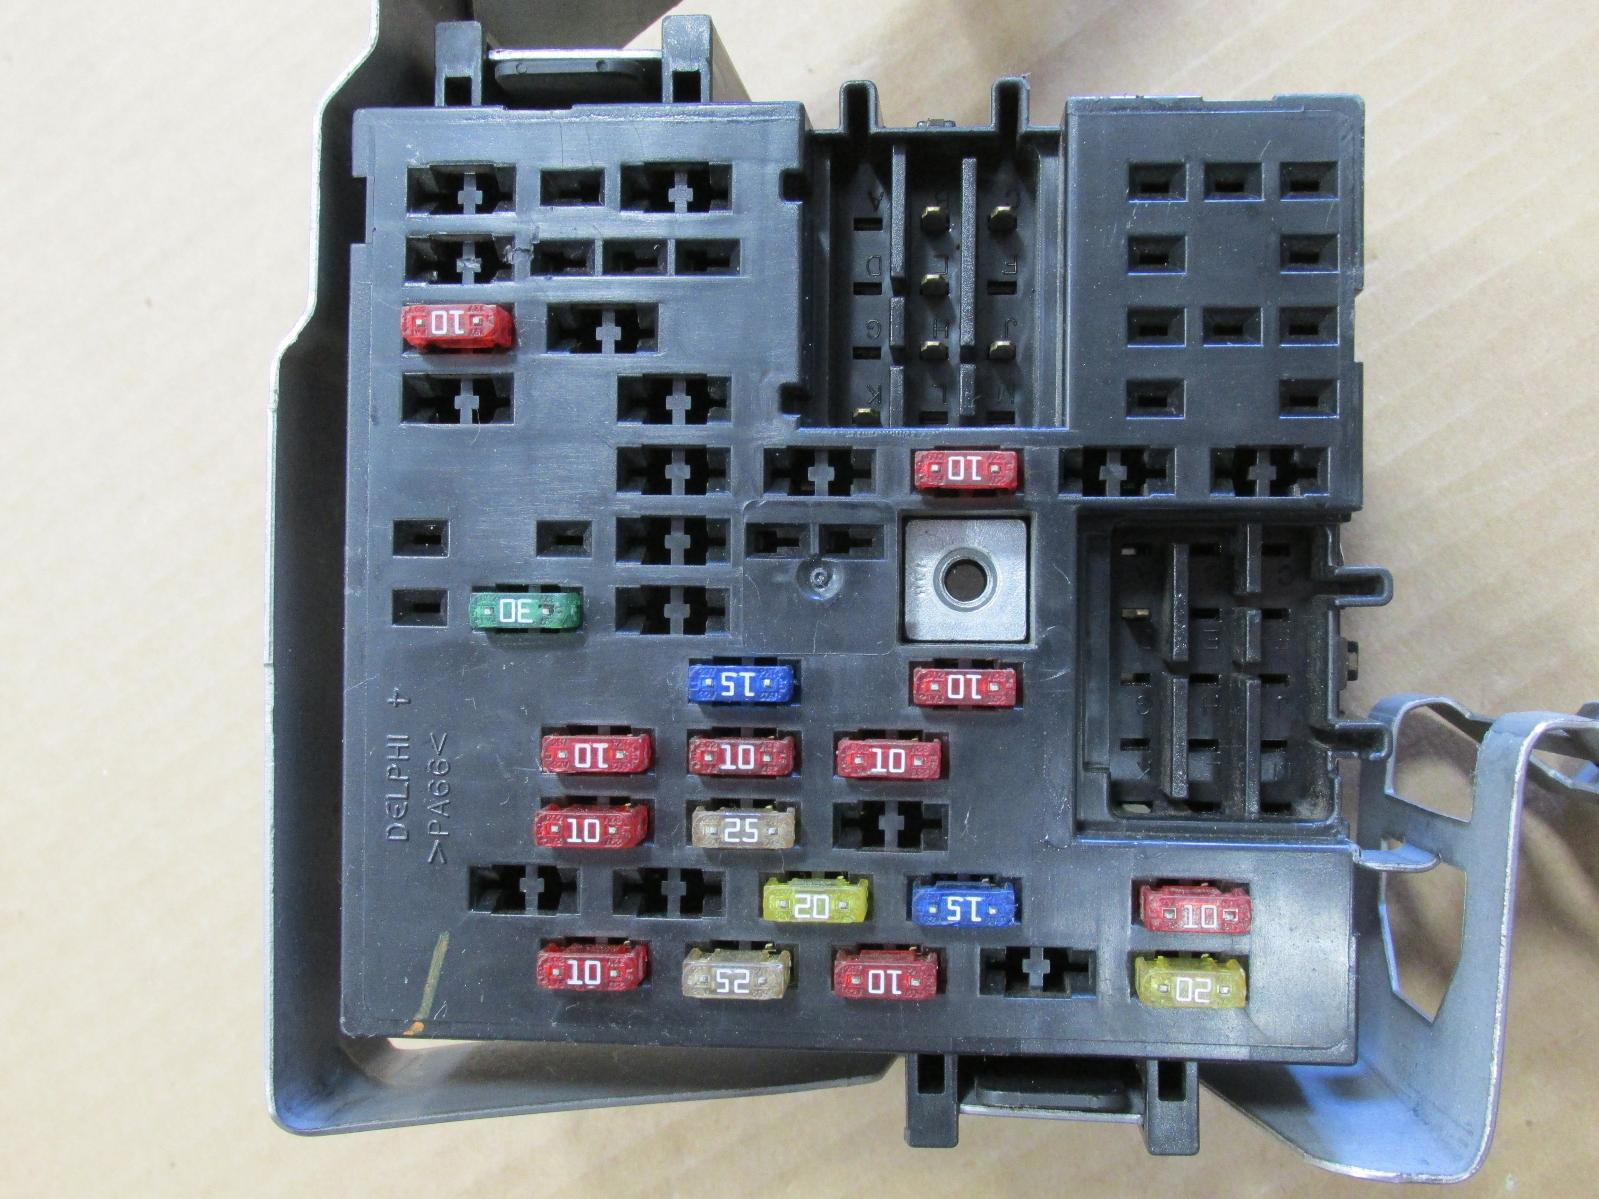 2000 00 chevrolet silverado fuse relay box 15328863 04 ebay 1962 chevy truck fuse box 1987 chevy truck fuse box location